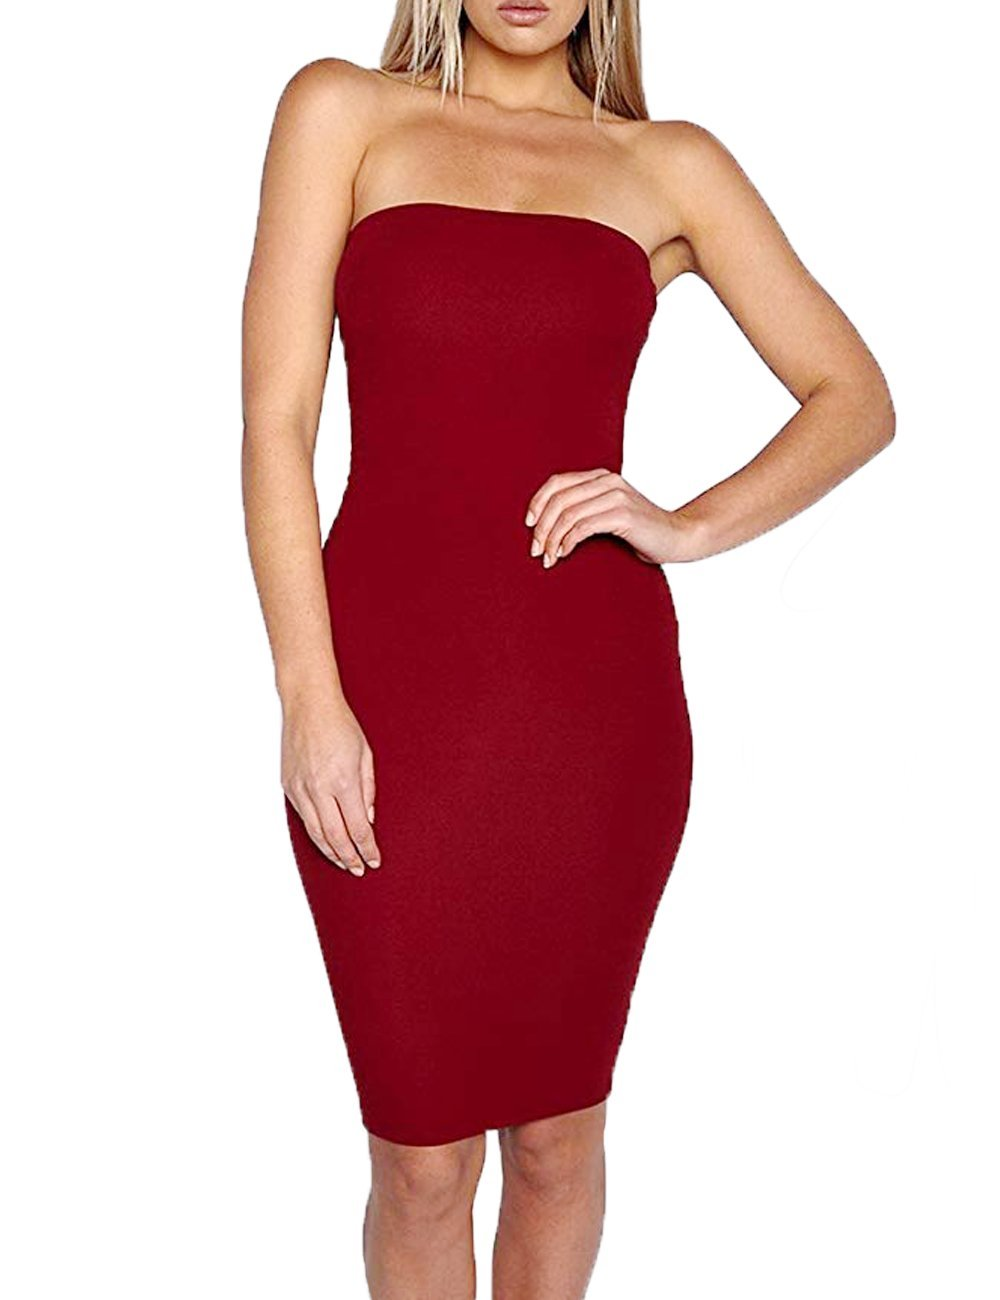 1212096ddb Haola Women s Tube Top Dresses with Sleeveless Sexy Bodycon Dress L WineRed